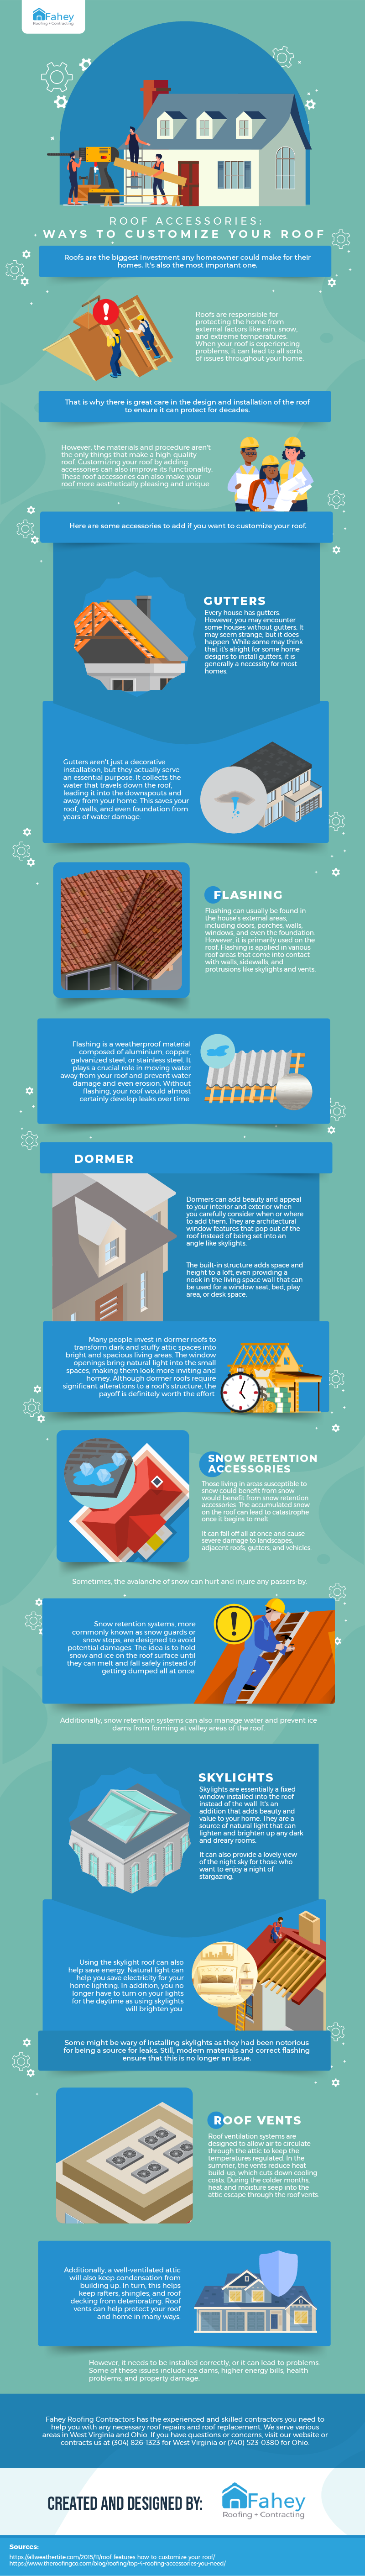 Ways-to-Customize-Your-Roof-Infographic